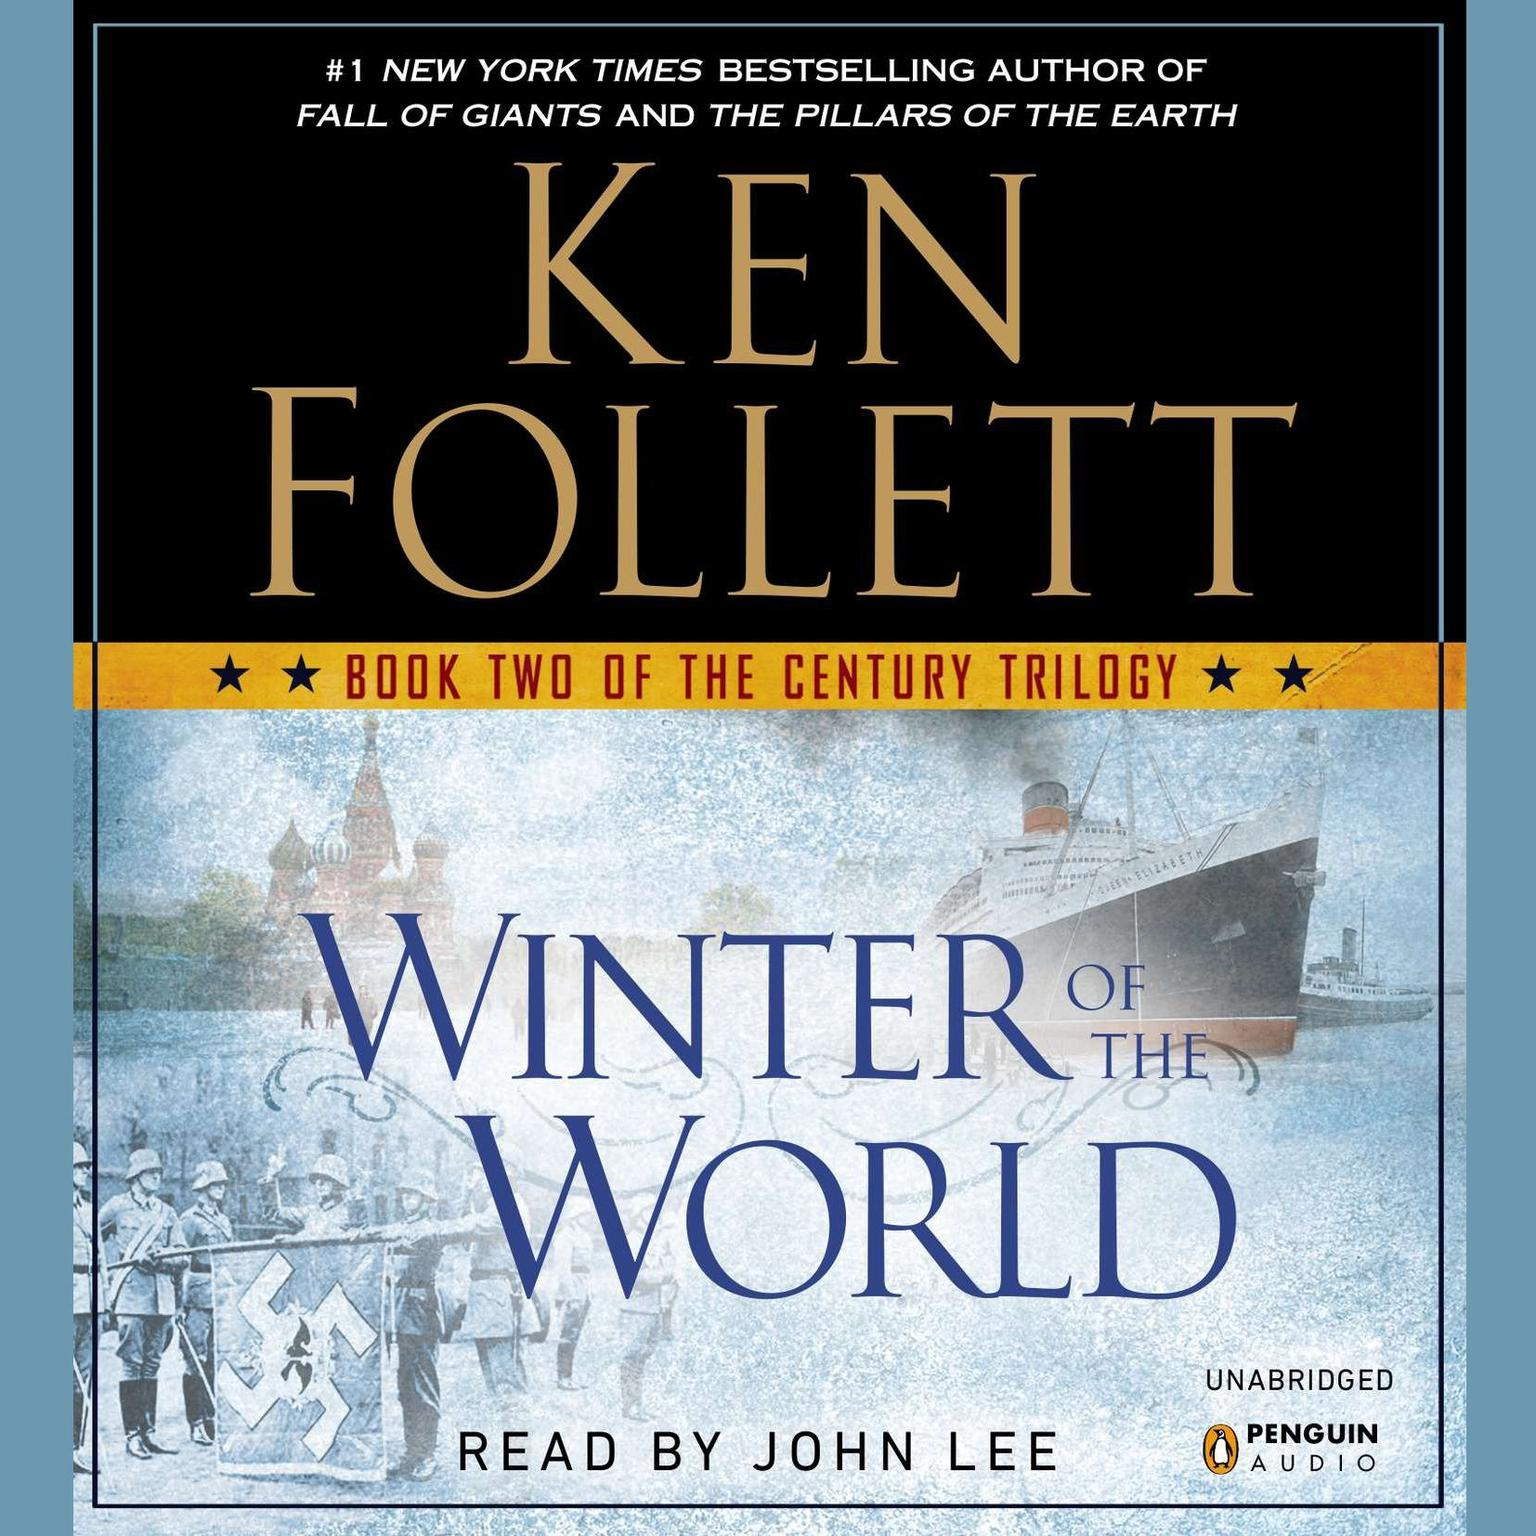 ken follett edge of eternity pdf download